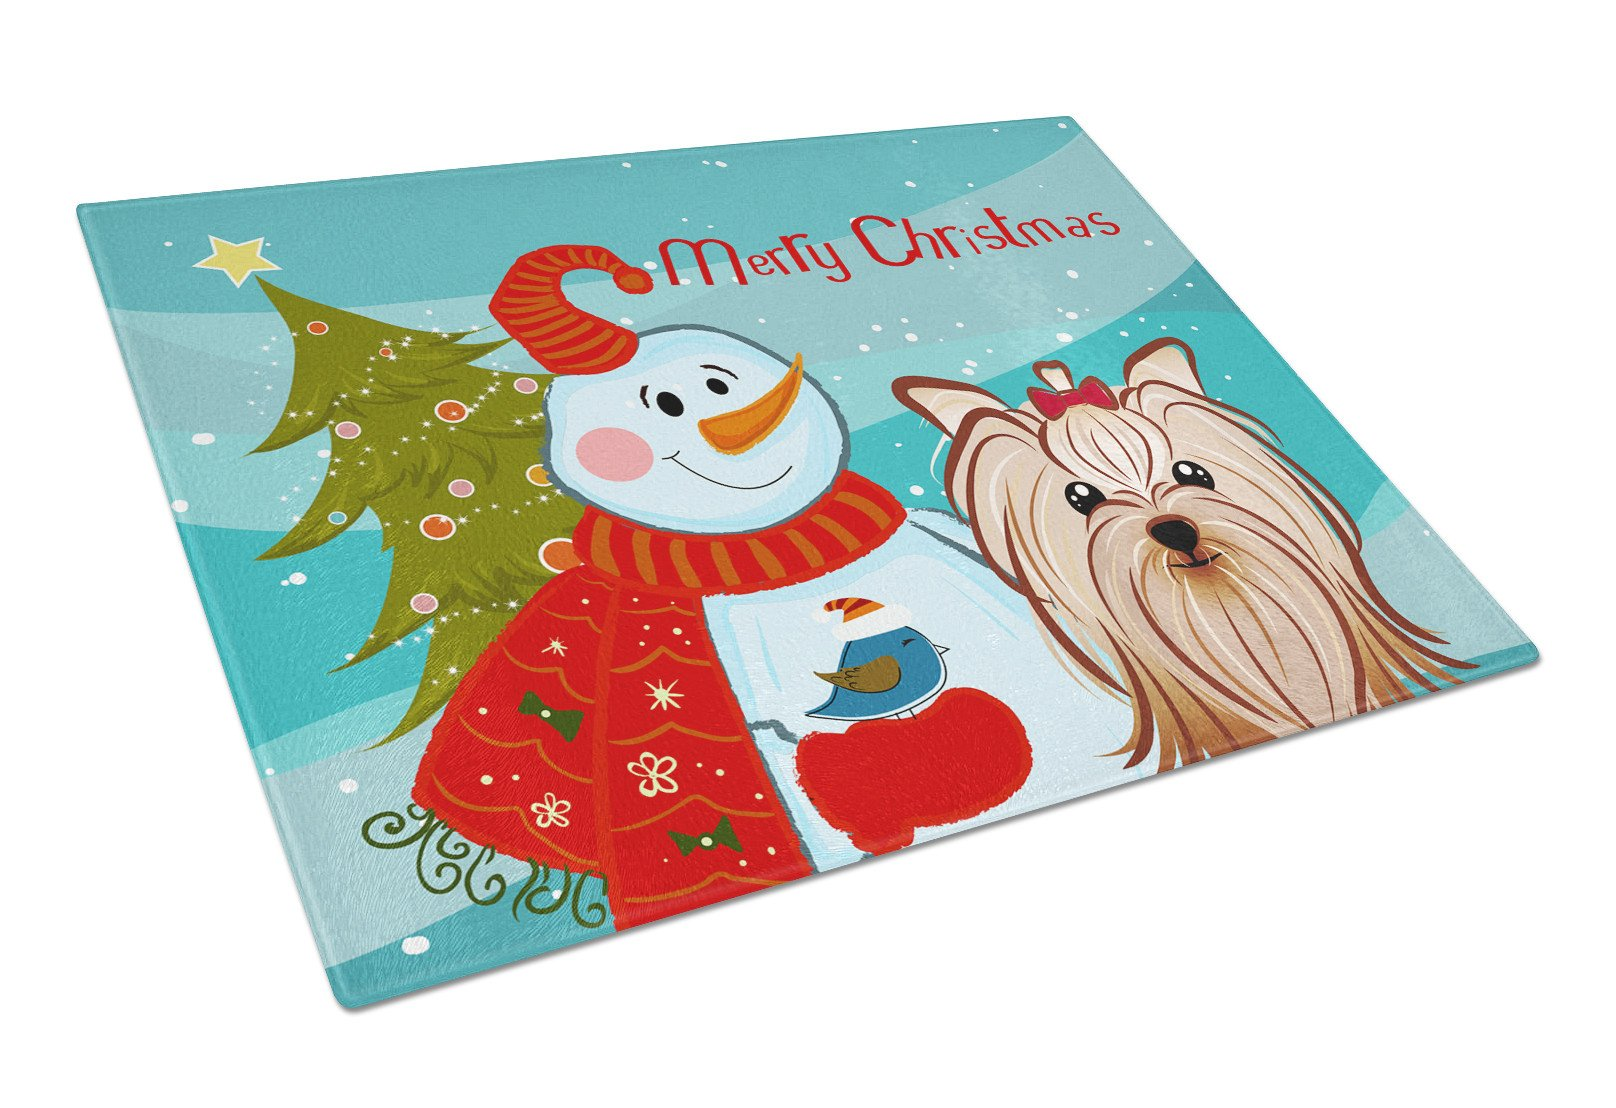 Snowman with Yorkie Yorkshire Terrier Glass Cutting Board Large BB1824LCB by Caroline's Treasures